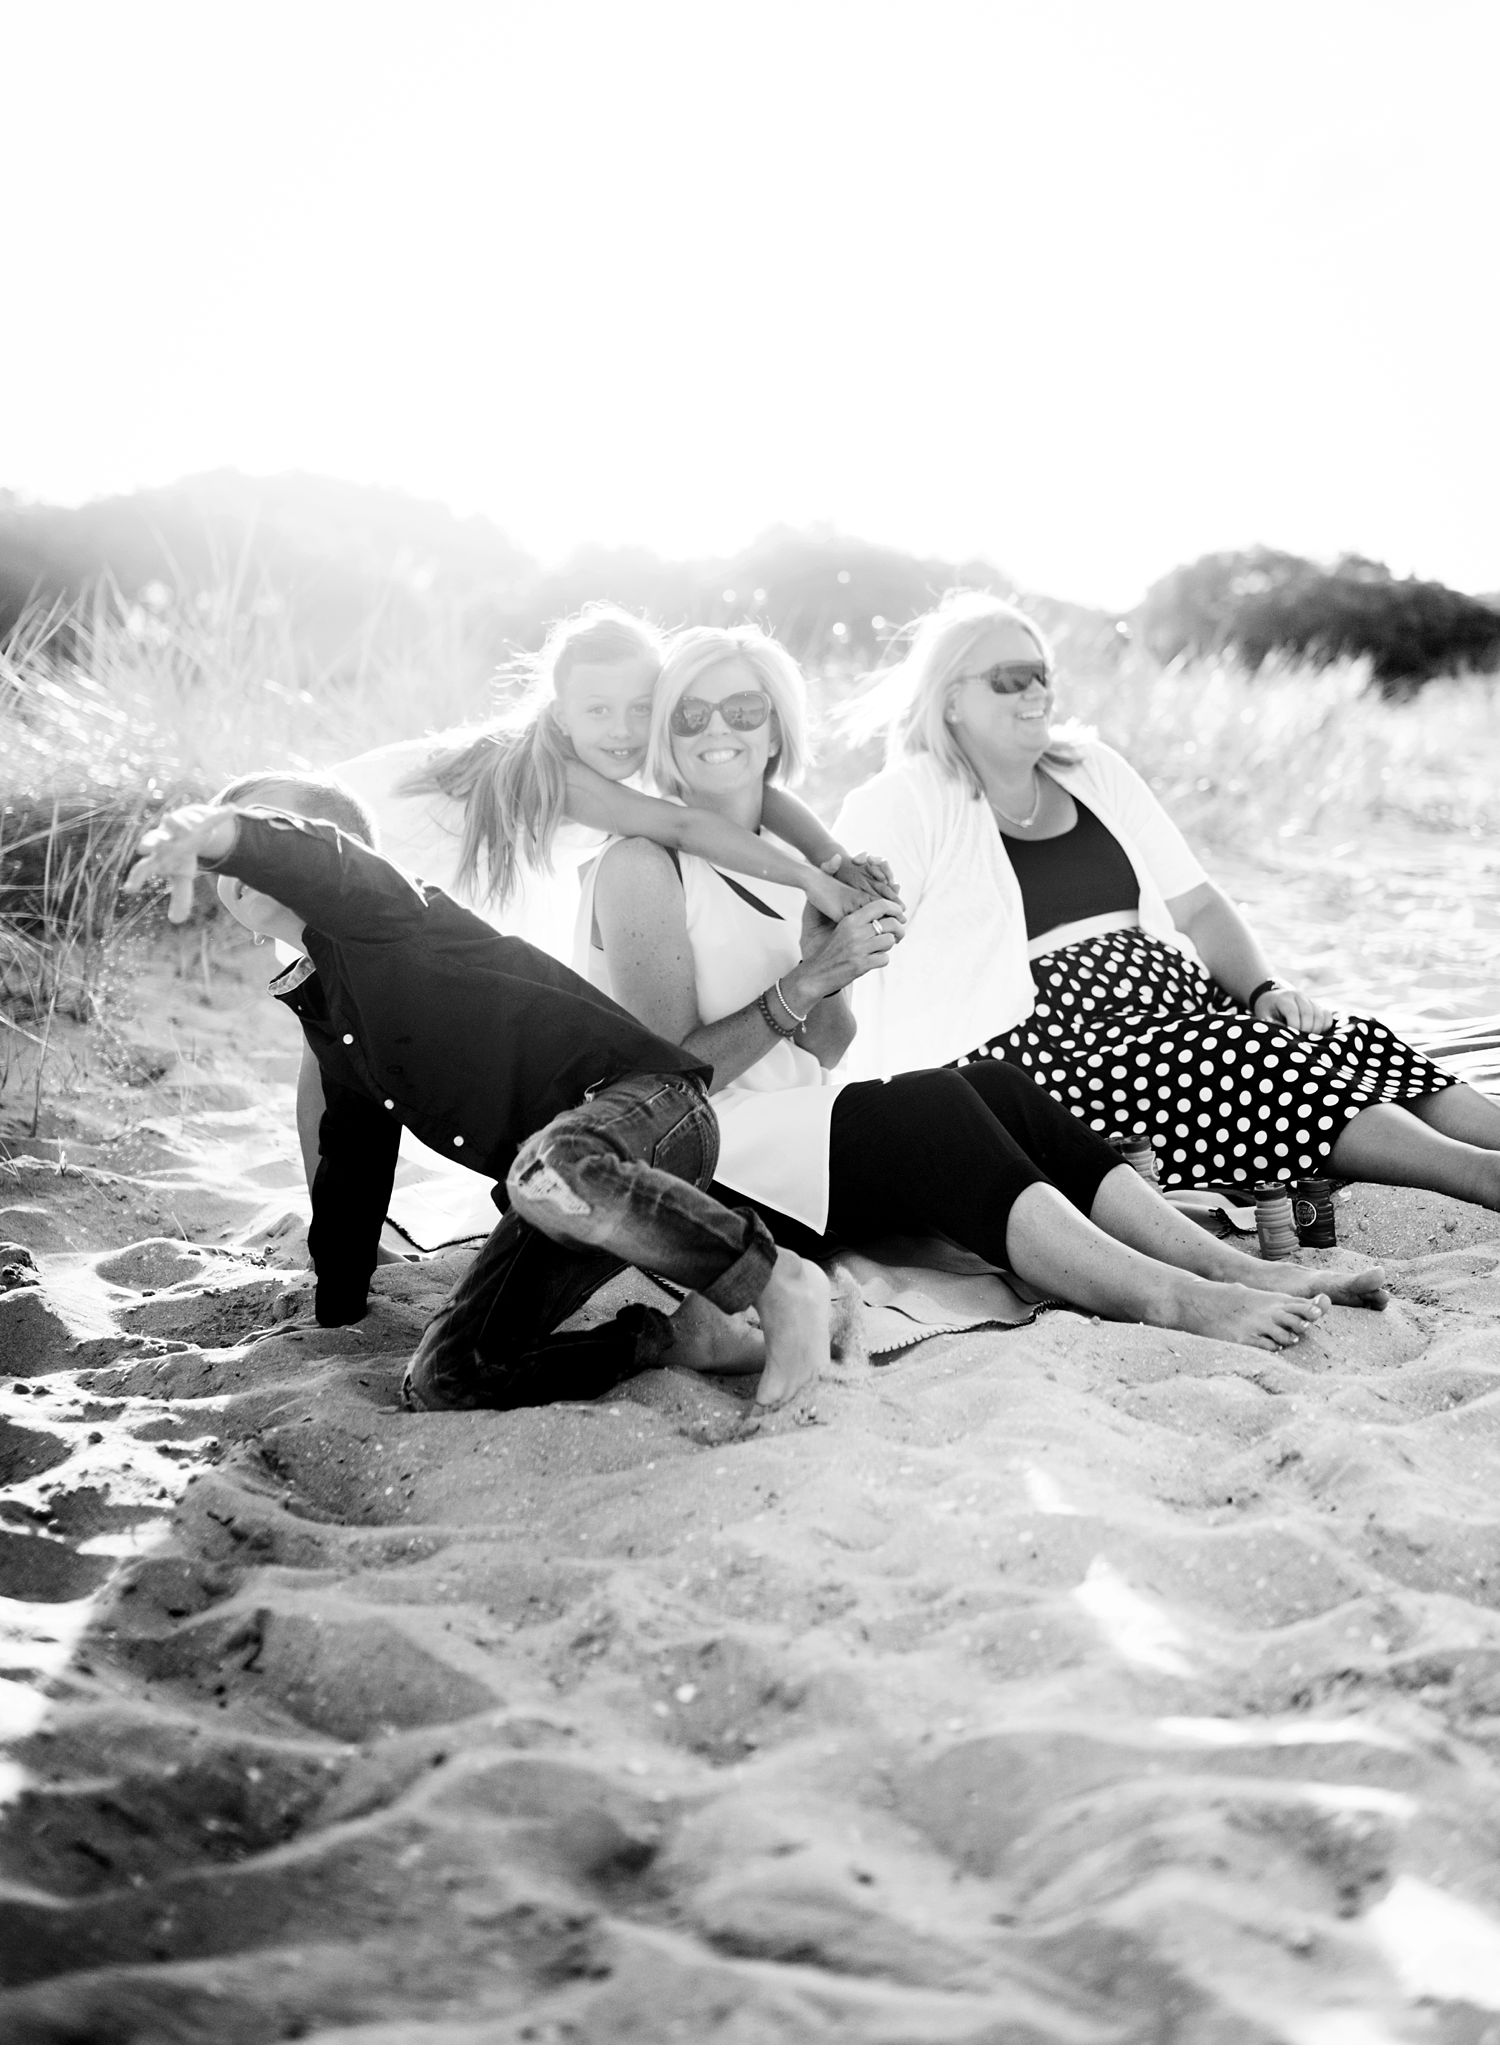 bec-stewart-photography-extended-family-photography-session-melbourne-australia-city-of-casey-56.jpg